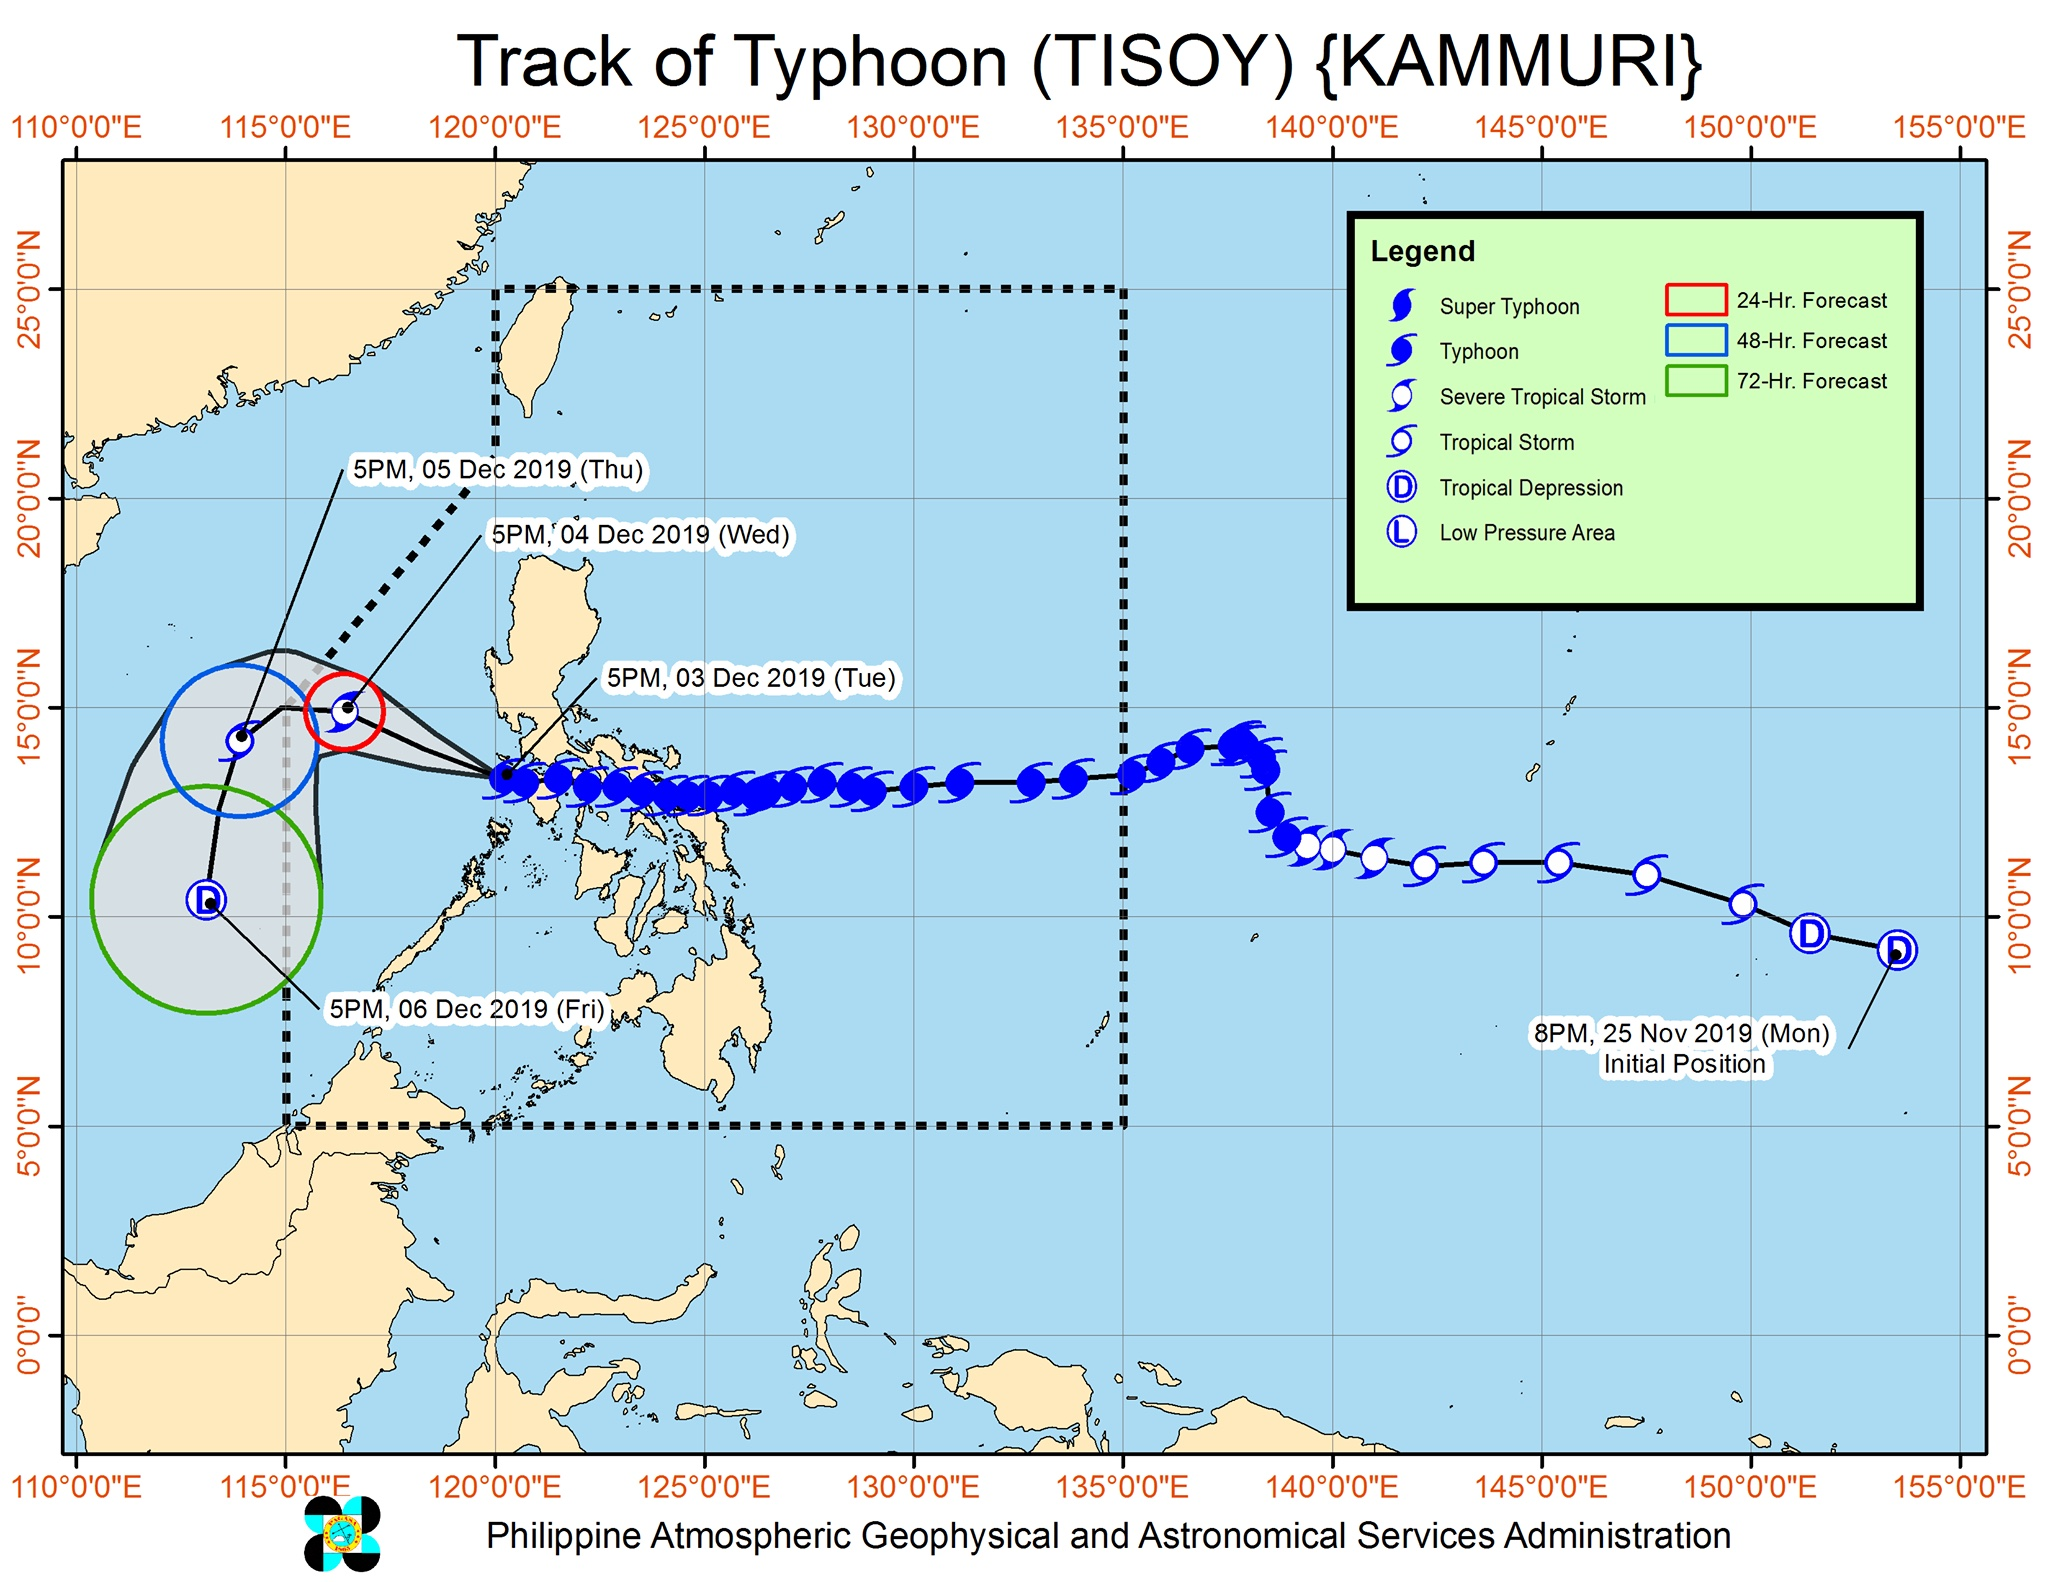 Forecast track of Typhoon Tisoy (Kammuri) as of December 3, 2019, 8 pm. Image from PAGASA